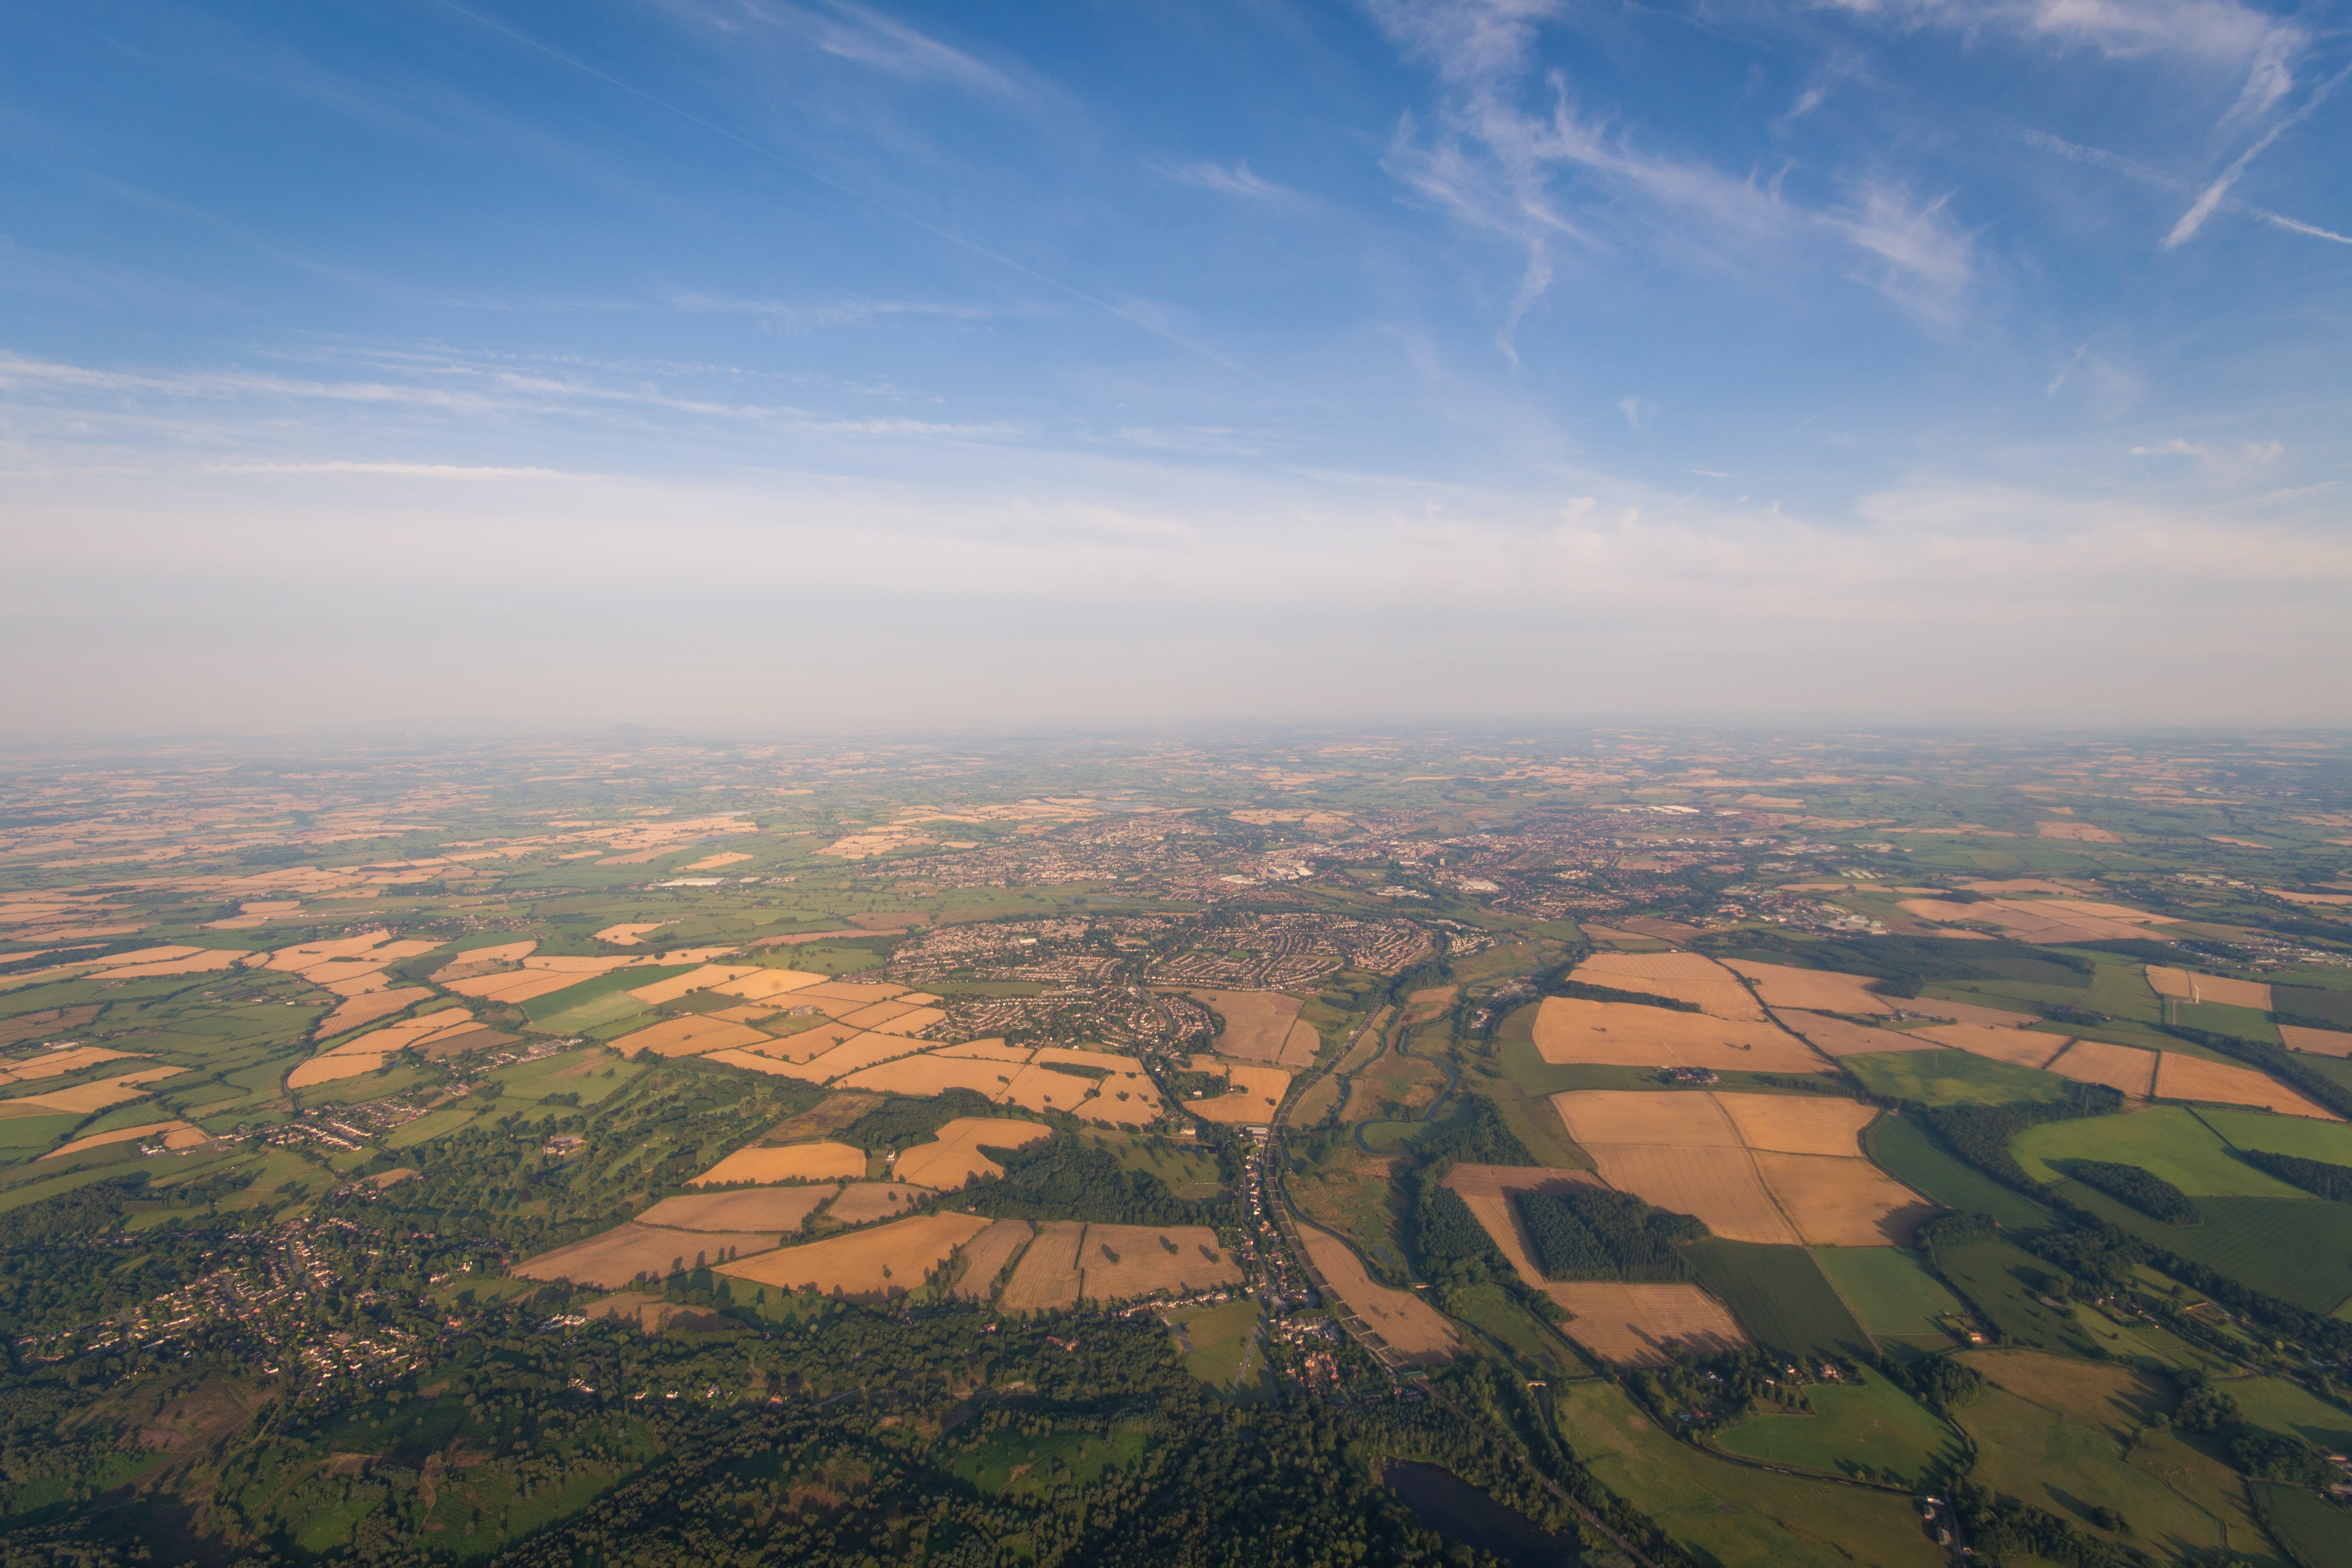 aerial photo of brown and green fields under blue sky during daytime